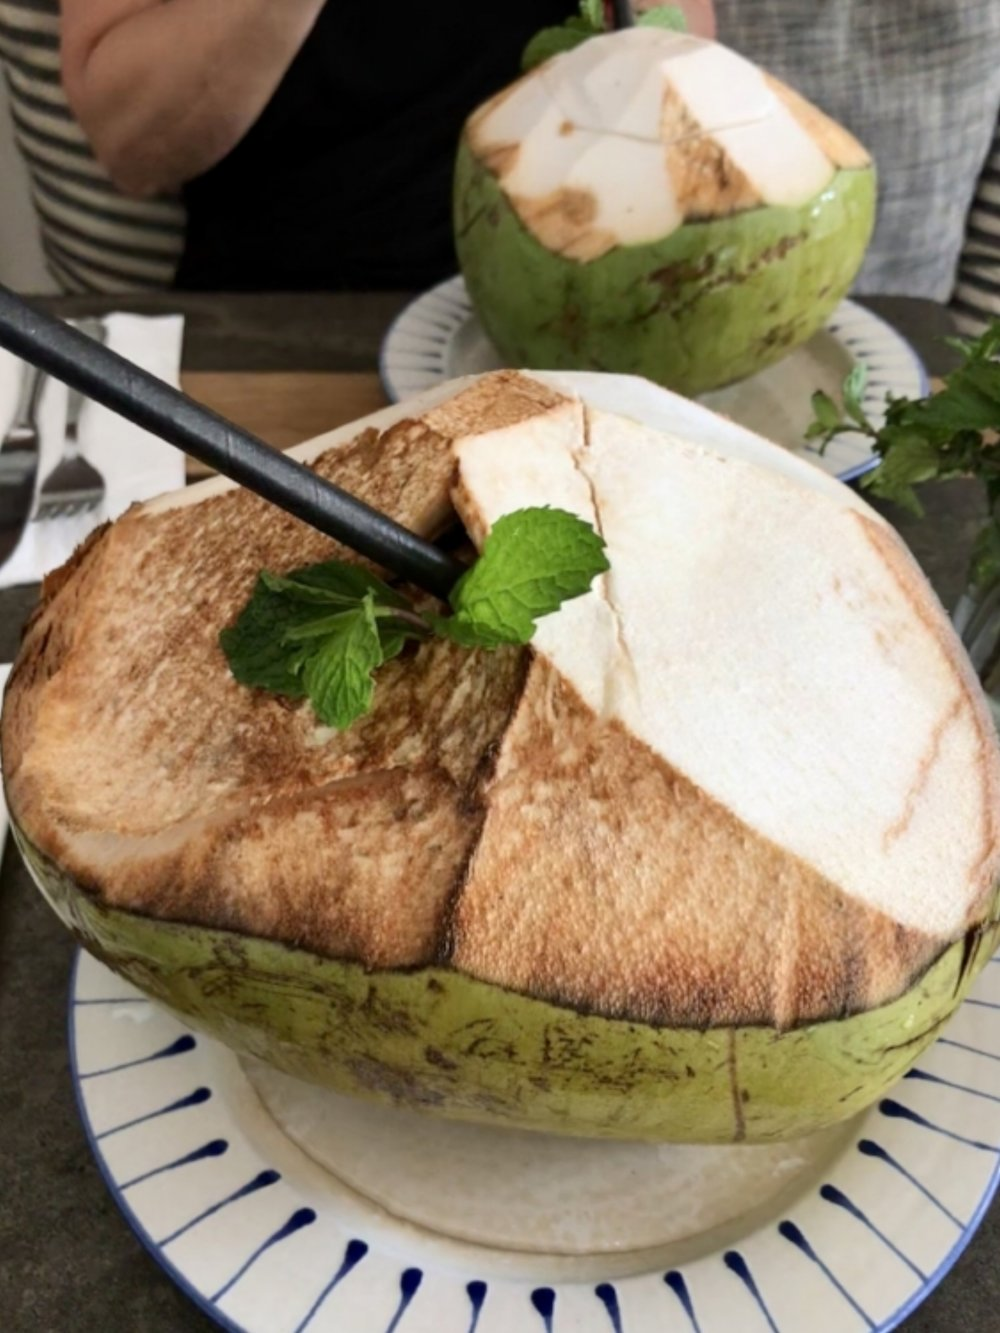 These giant coconuts were the perfect way to quench your thirst after a day of yoga or beach